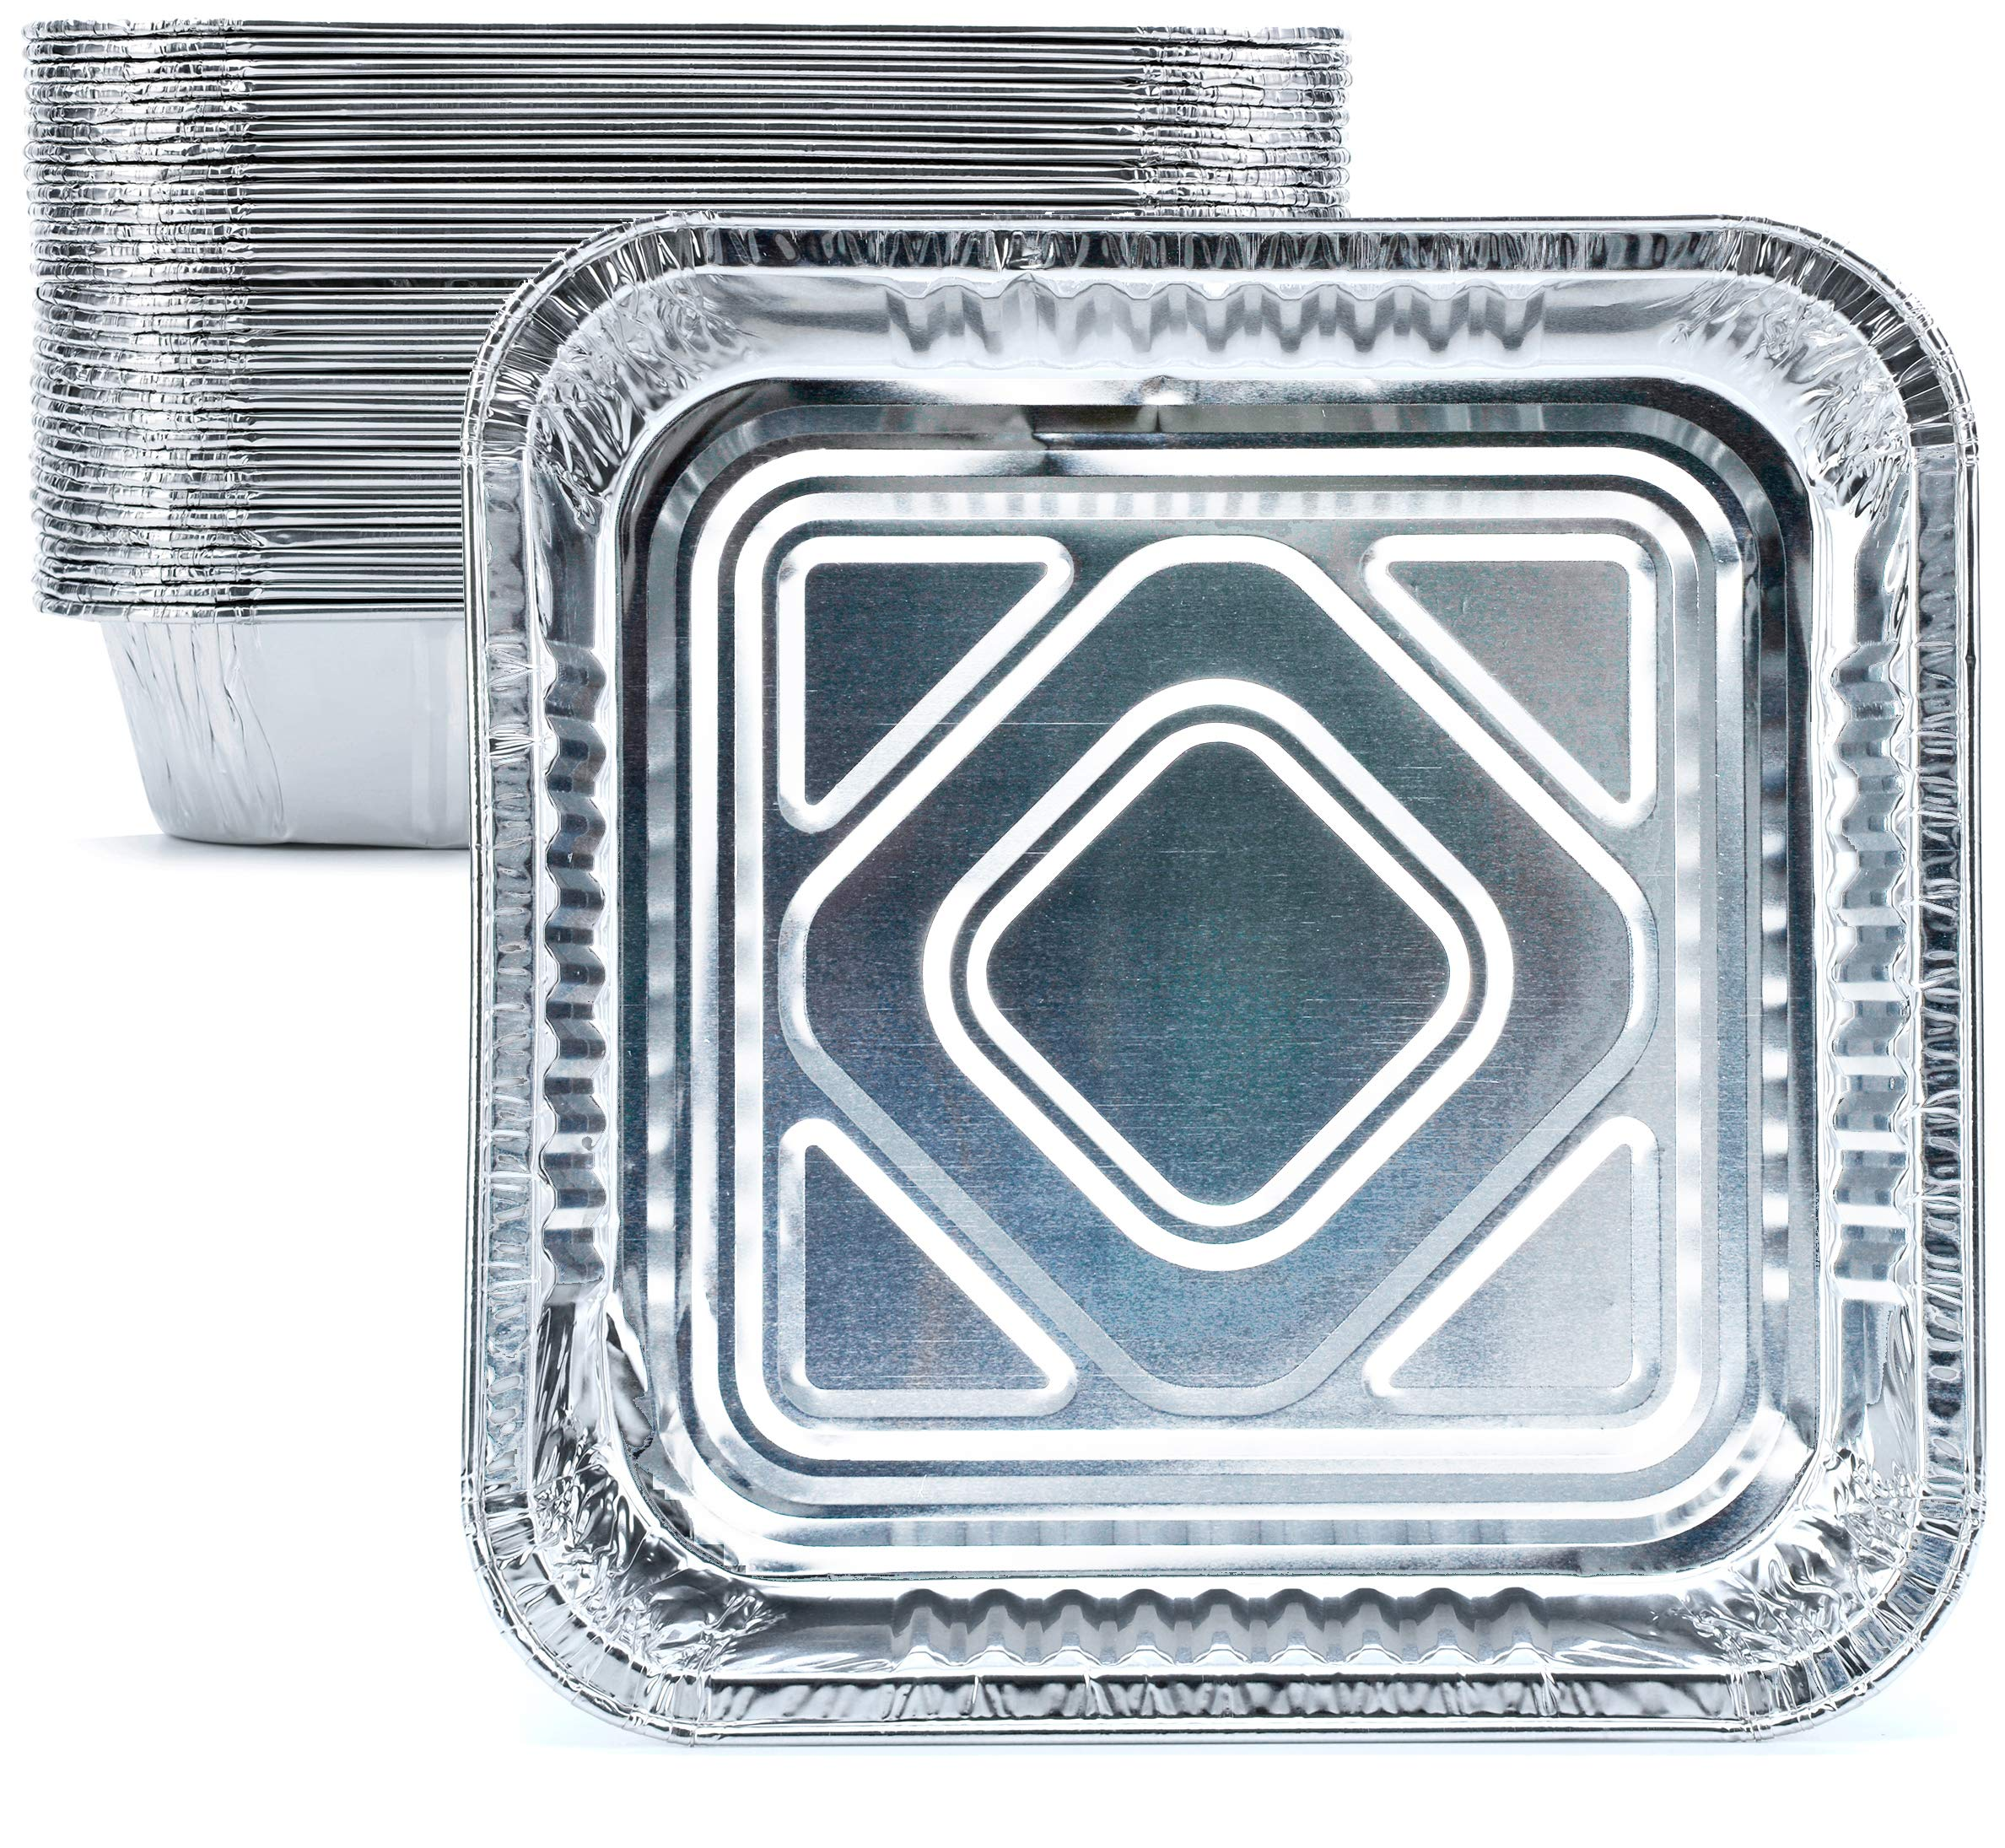 DOBI [30 Pack - 8'' x 8''] Square Pans - Standard Sized Disposable Aluminum Foil Tins, Perfect for Baking and Cooking by DOBI